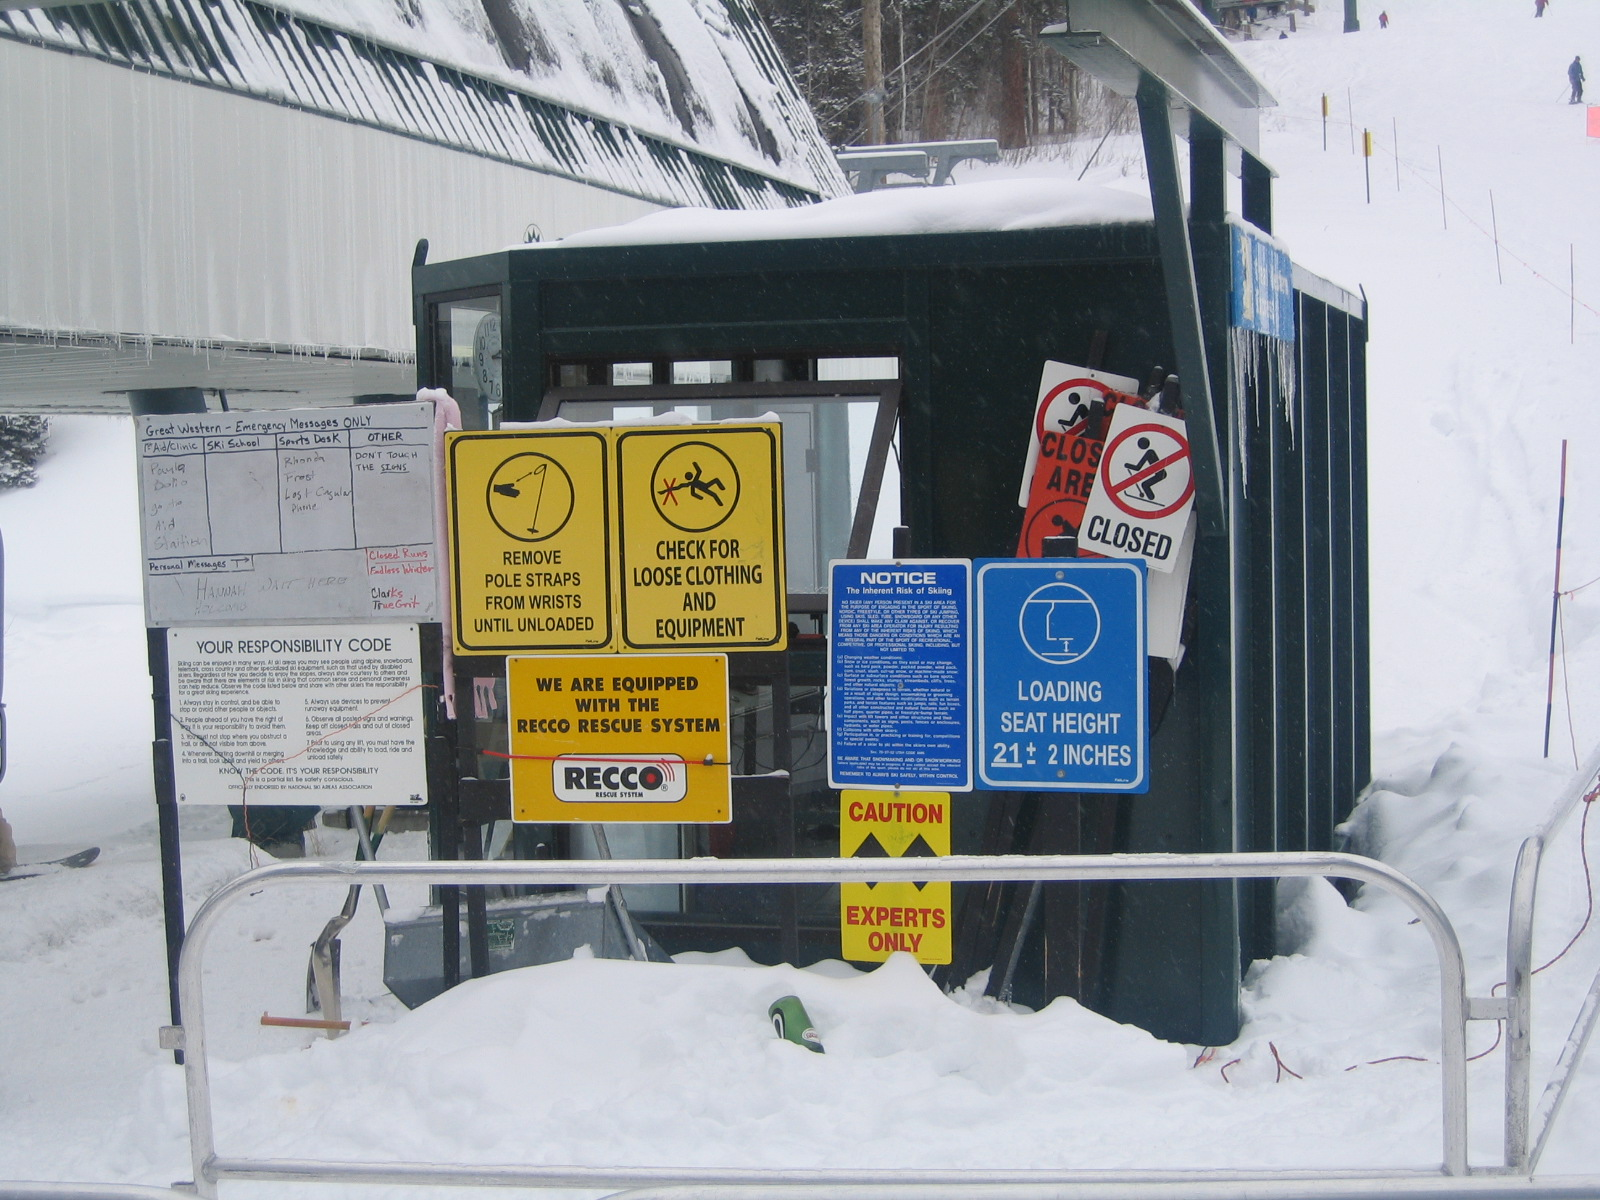 Numerous Information Signs for Ski Lift